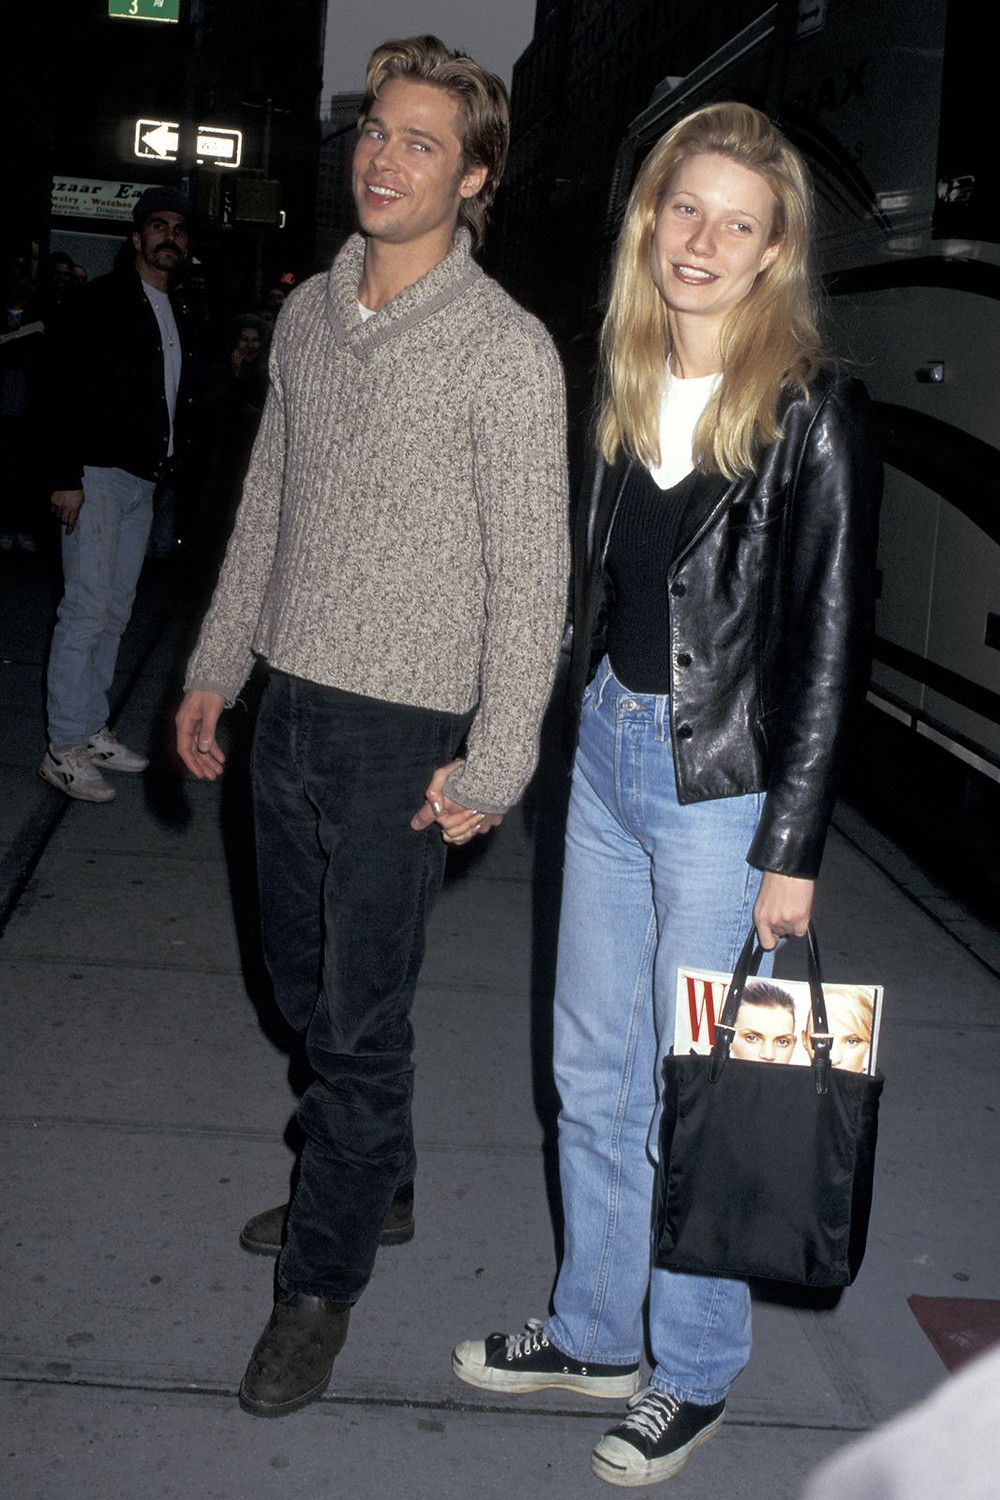 Gwyneth Paltrow wearing Converse in the 90s